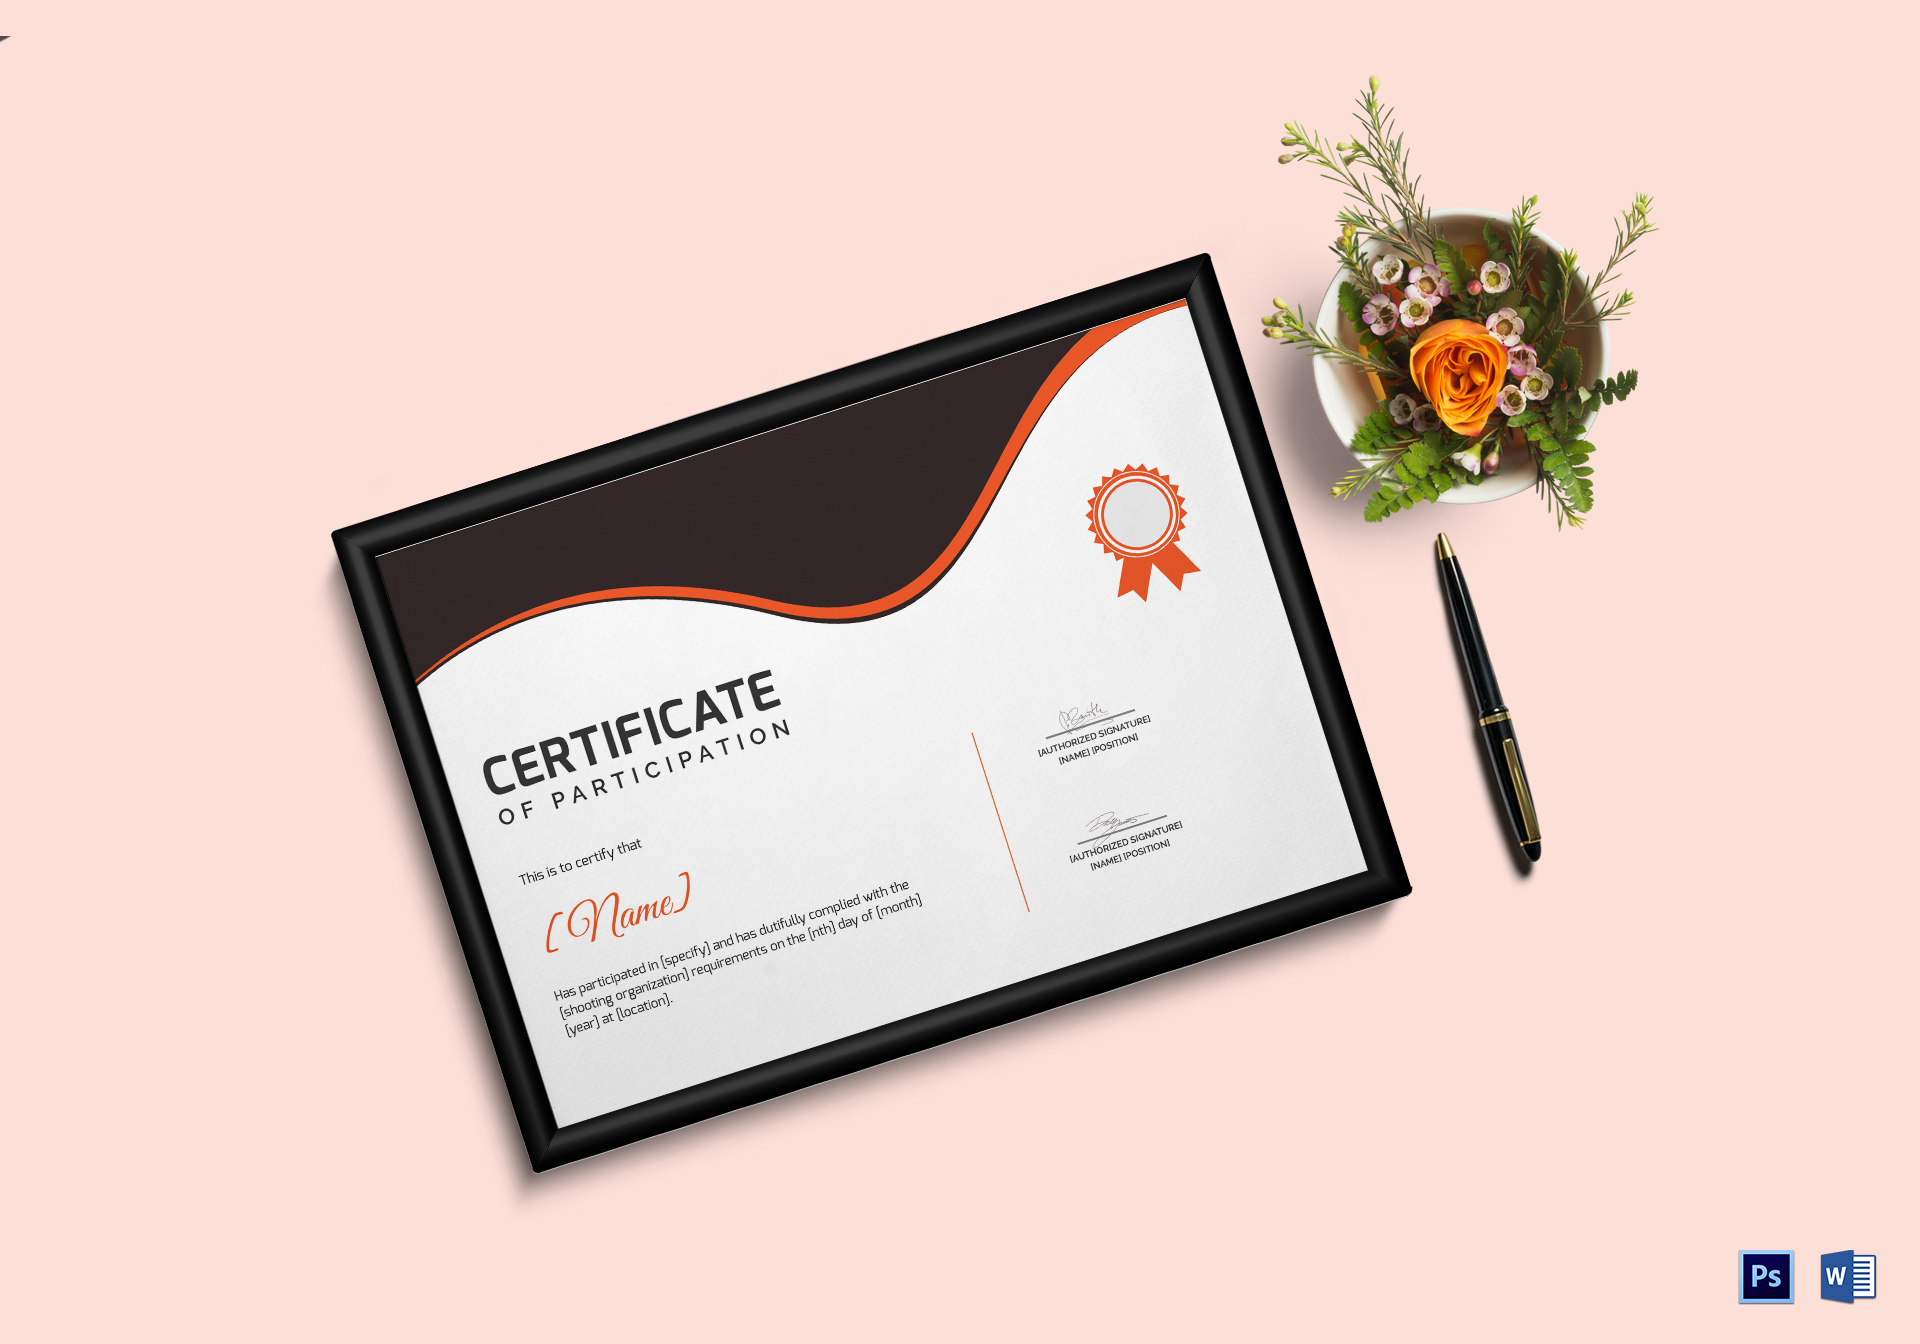 Shooting Participation Certificate Template